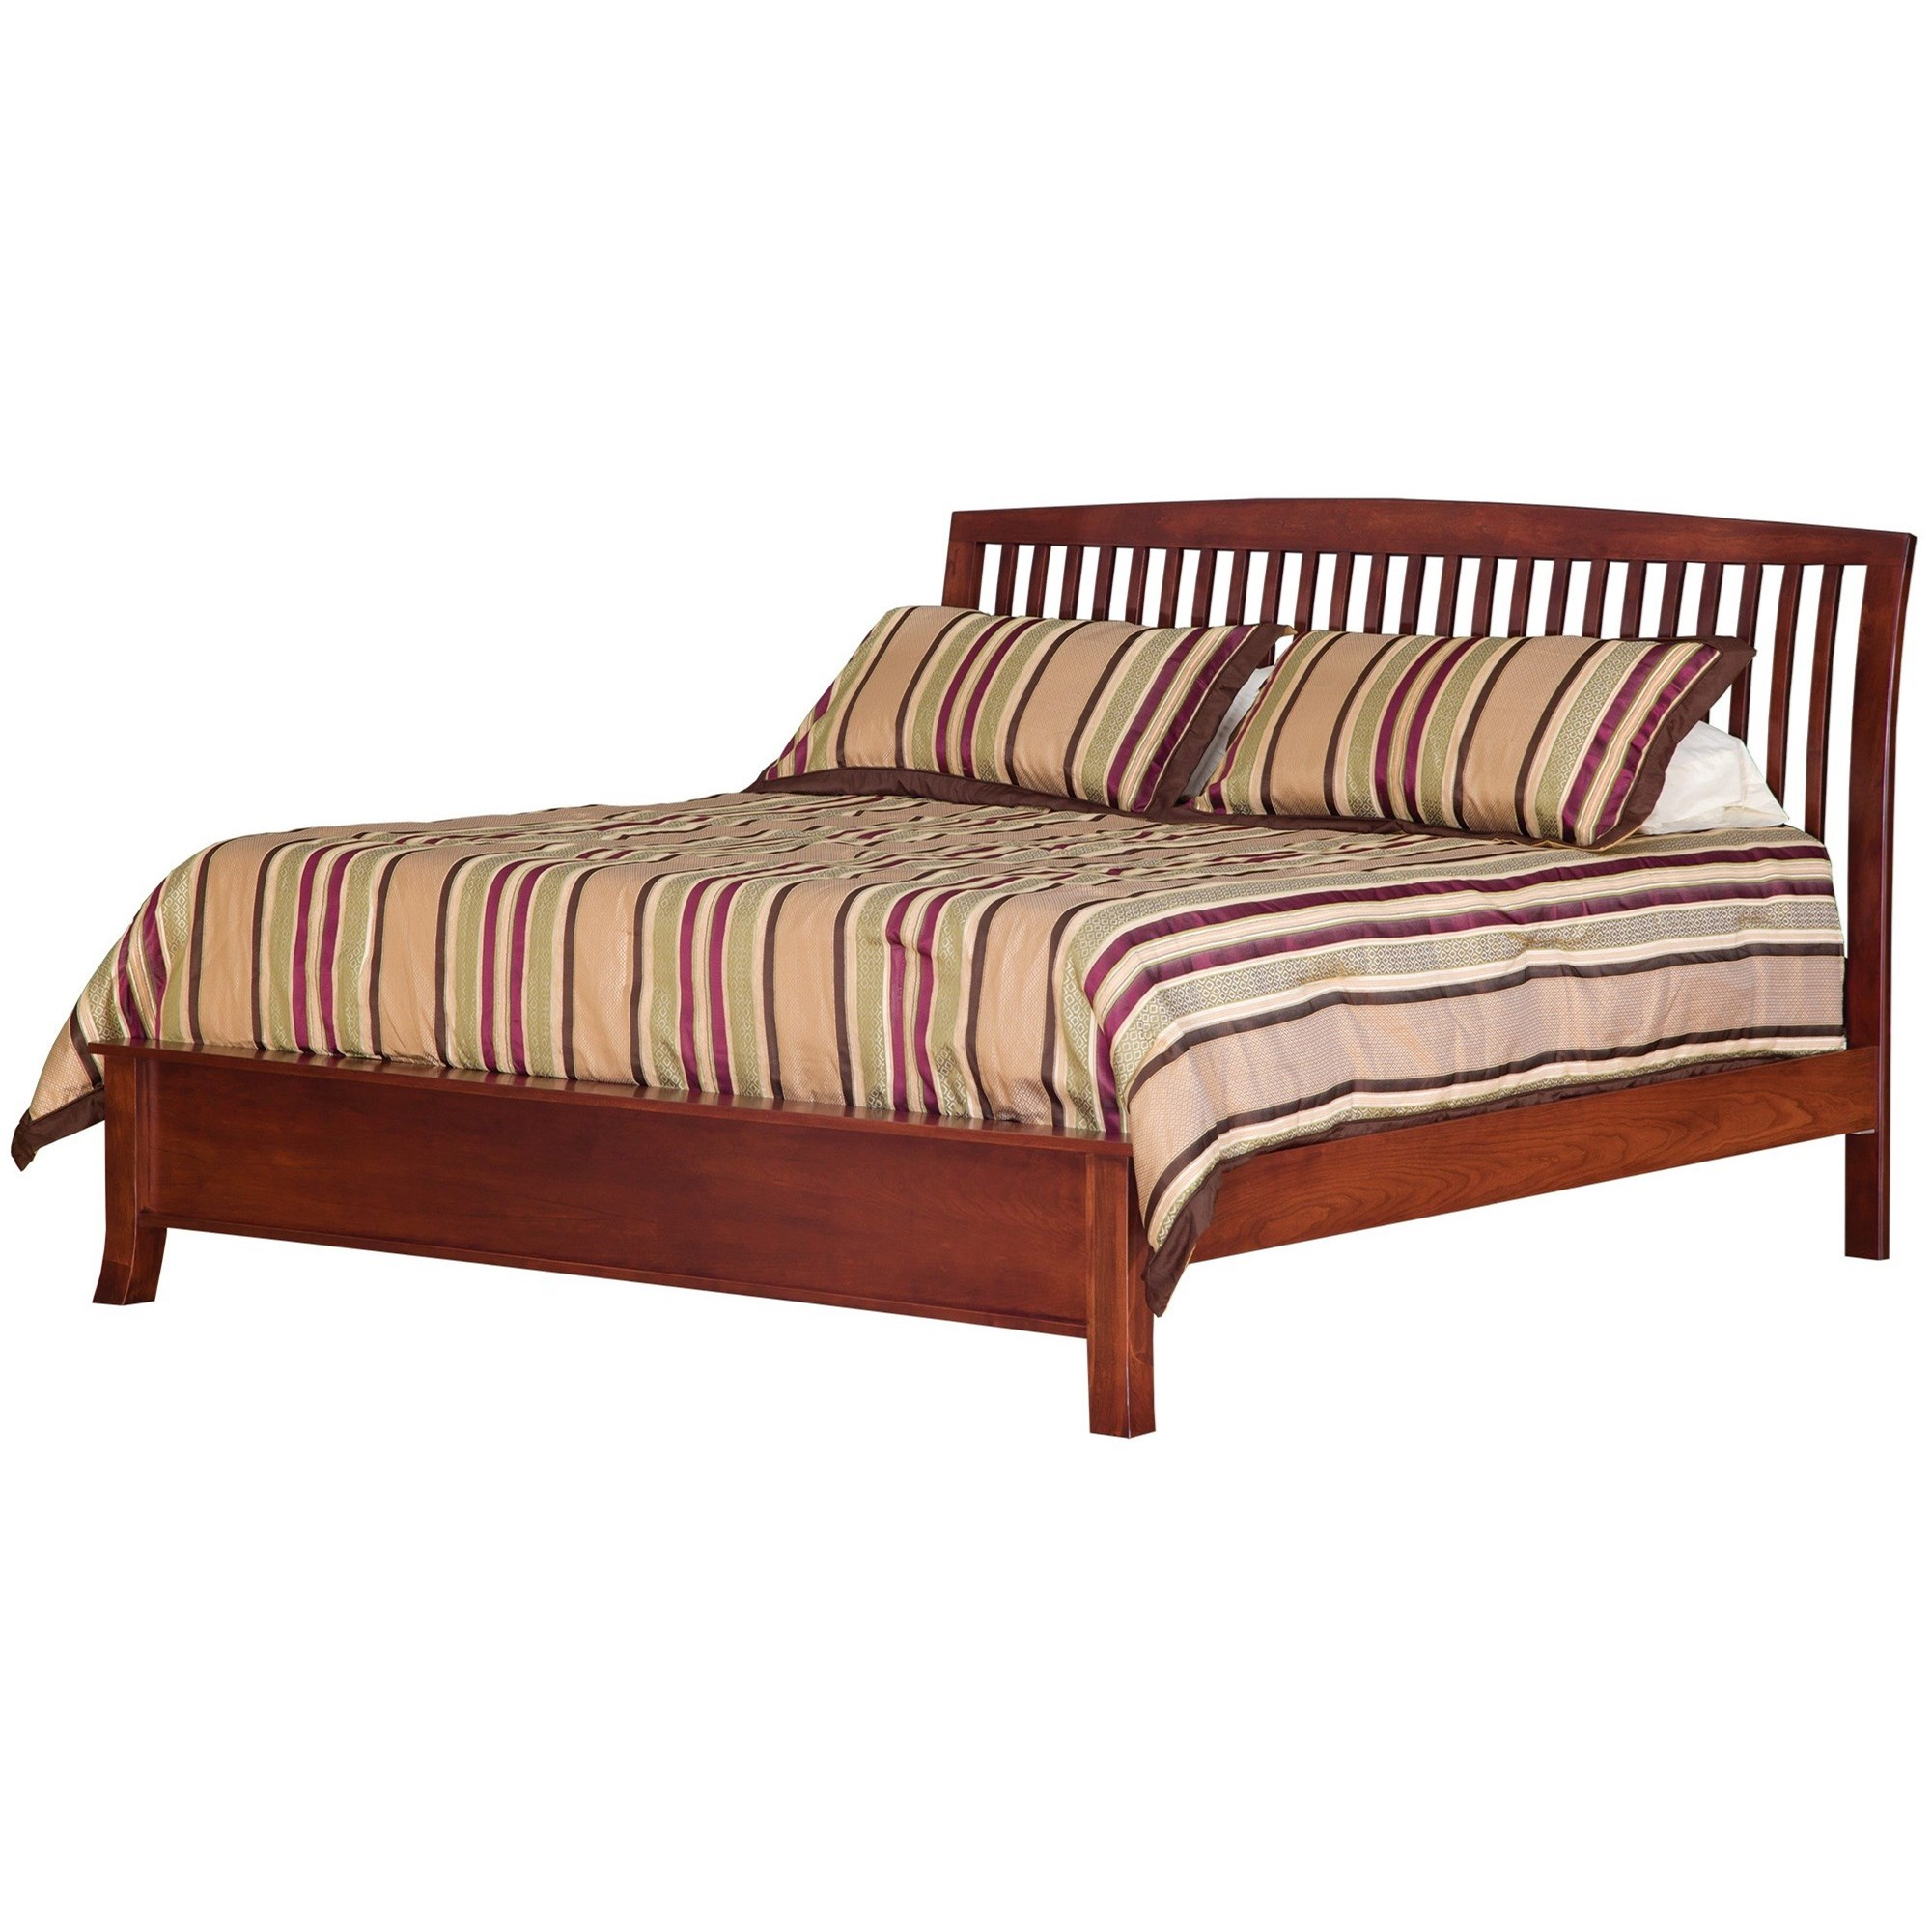 Holmes King Bed by Daniel's Amish at Saugerties Furniture Mart